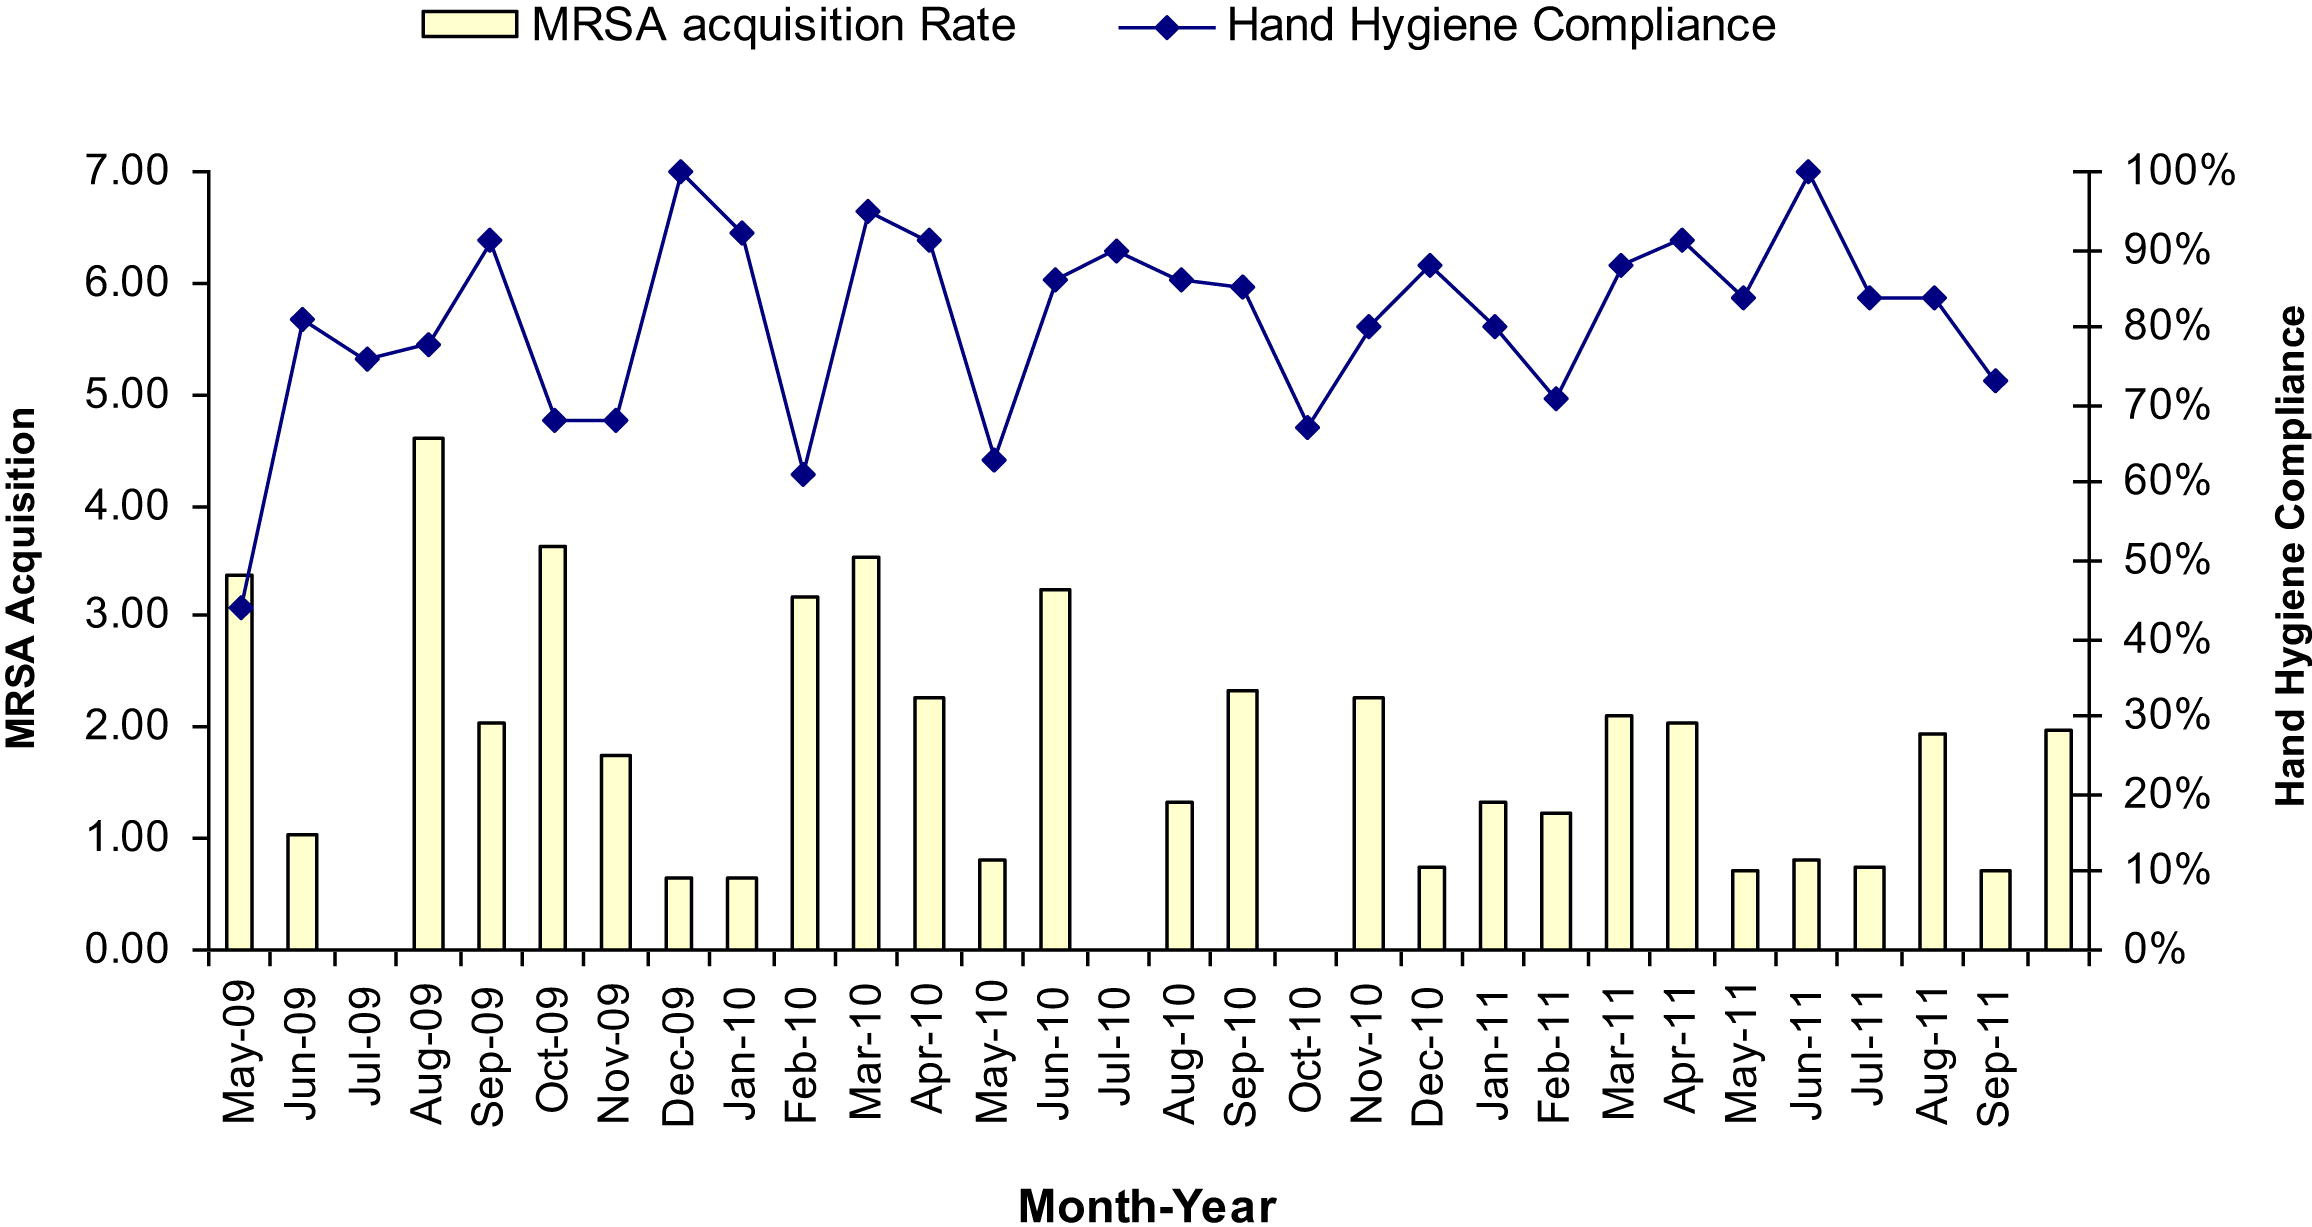 Improving Hand Hygiene Compliance In Health Care Workers